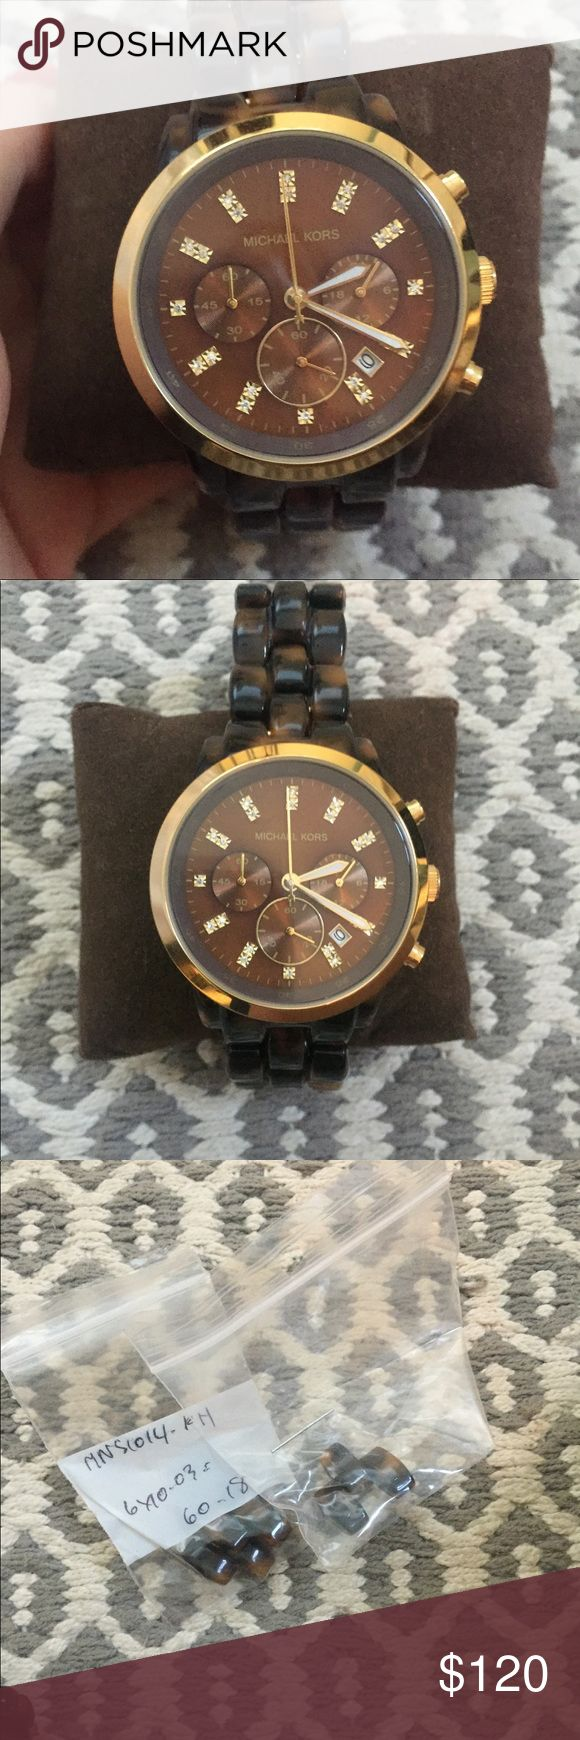 Michael Kors tortoise shell watch Michael Kors K5216 tortoise shell watch with nice diamond detailing. Needs a new battery but is BARELY worn. It was adjusted so the extra pieces come with it. Box and manual as well Accessories Watches